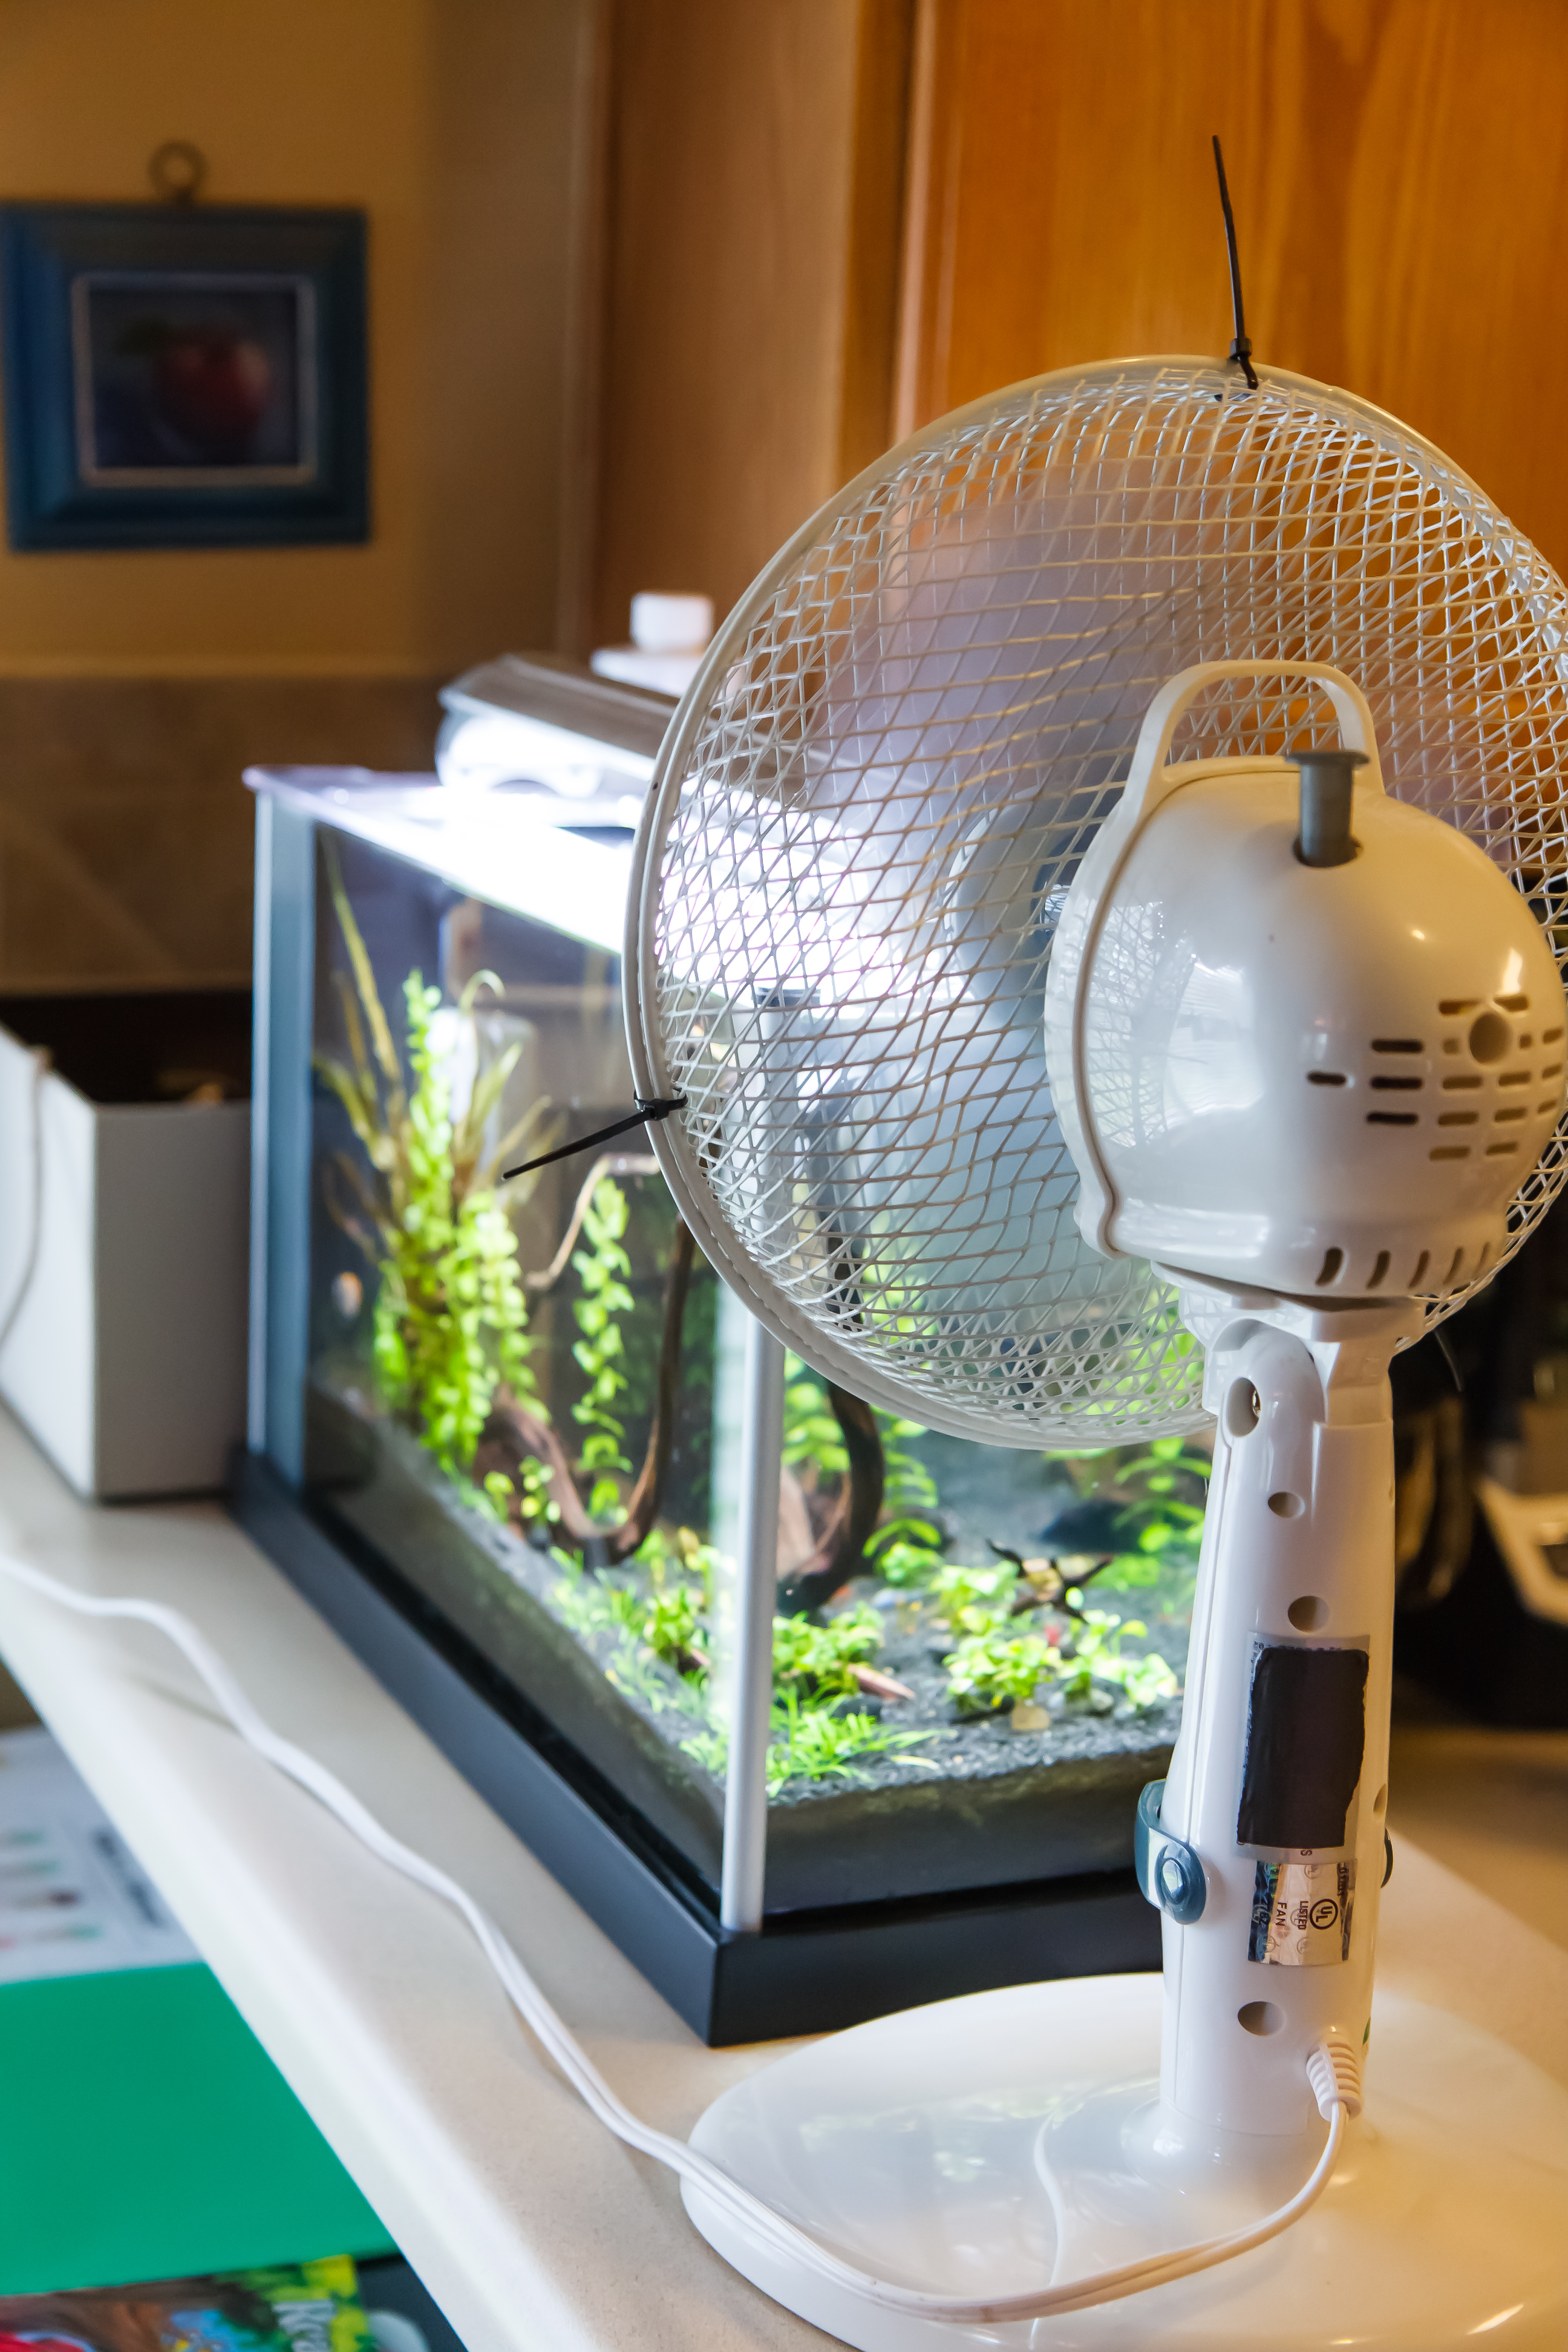 Using an Aquarium Cooling Fan - Does it Work?